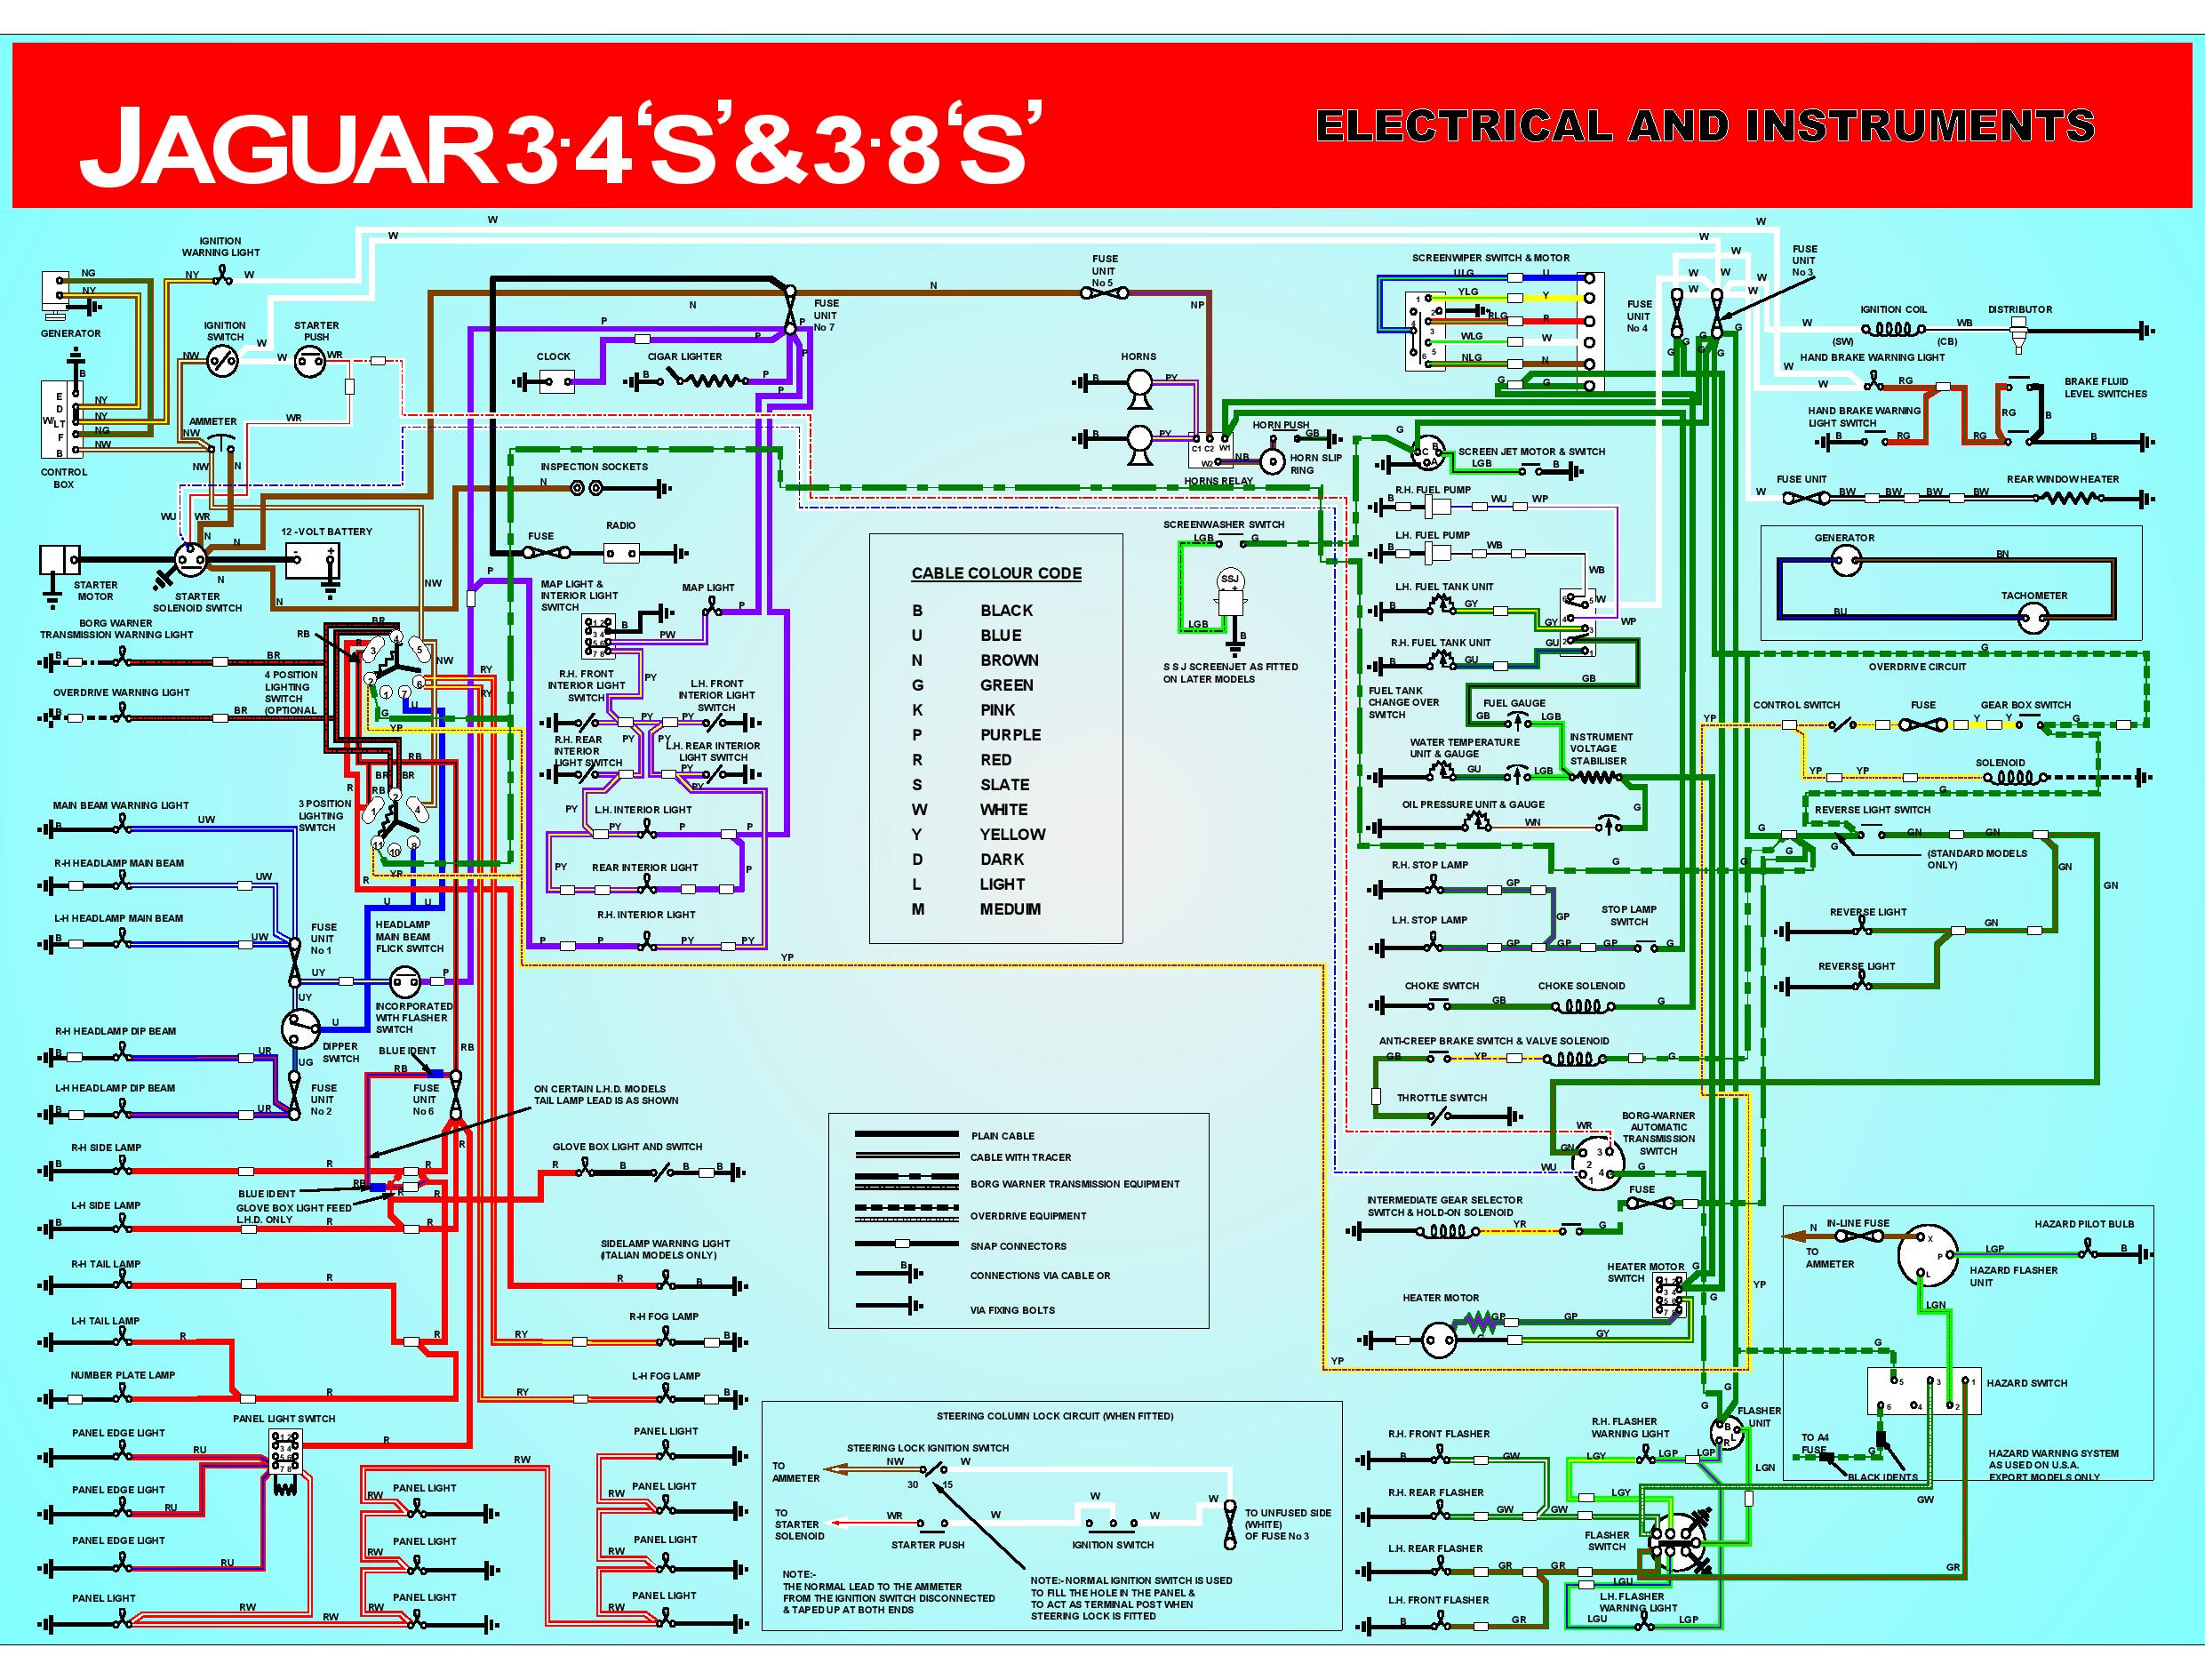 Jaguar S Type Rear Light Wiring Diagram | Wiring Diagram on volkswagen golf wiring diagram, jaguar s type fuel system diagram, jaguar s type brakes, suzuki x90 wiring diagram, 2005 jaguar s type fuse box diagram, jaguar s type repair manual, porsche cayenne wiring diagram, jaguar s type oil filter, jaguar s type transmission diagram, 2000 jaguar s type fuse diagram, 2003 jaguar x-type fuse box diagram, jaguar s type engine swap, 2000 jaguar s type cooling system diagram, jaguar s type timing chain, jaguar s type radio, dodge viper wiring diagram, 2003 jaguar s type engine diagram, jaguar xjs wiring-diagram, jaguar xj8 serpentine belt diagram, mitsubishi starion wiring diagram,